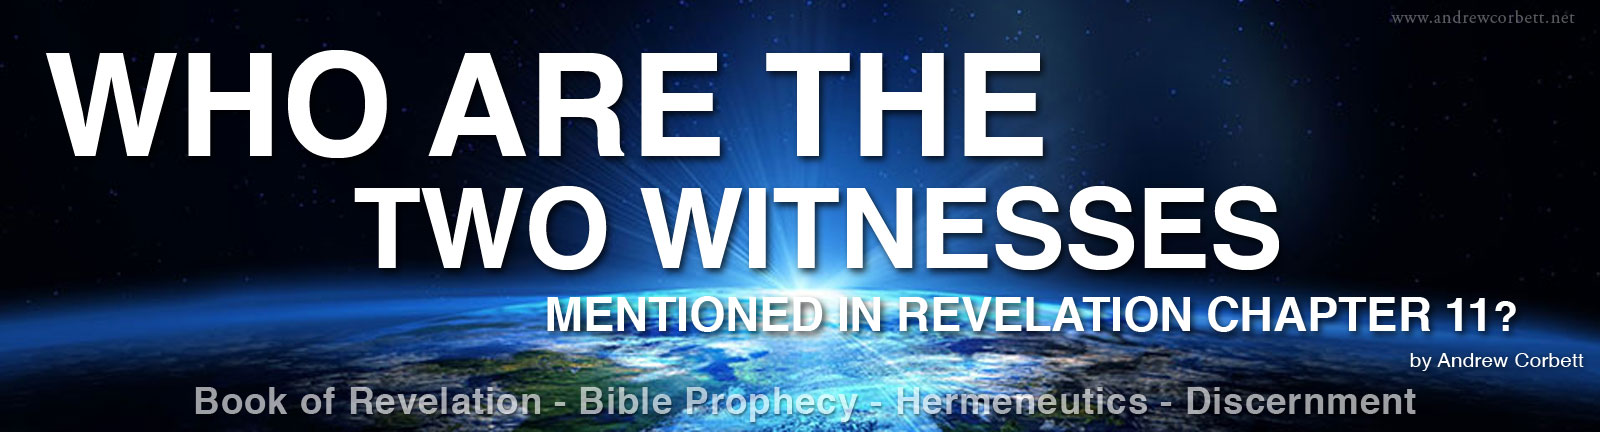 Who Are The Two Witnesses Mentioned In Revelation Chapter 11?